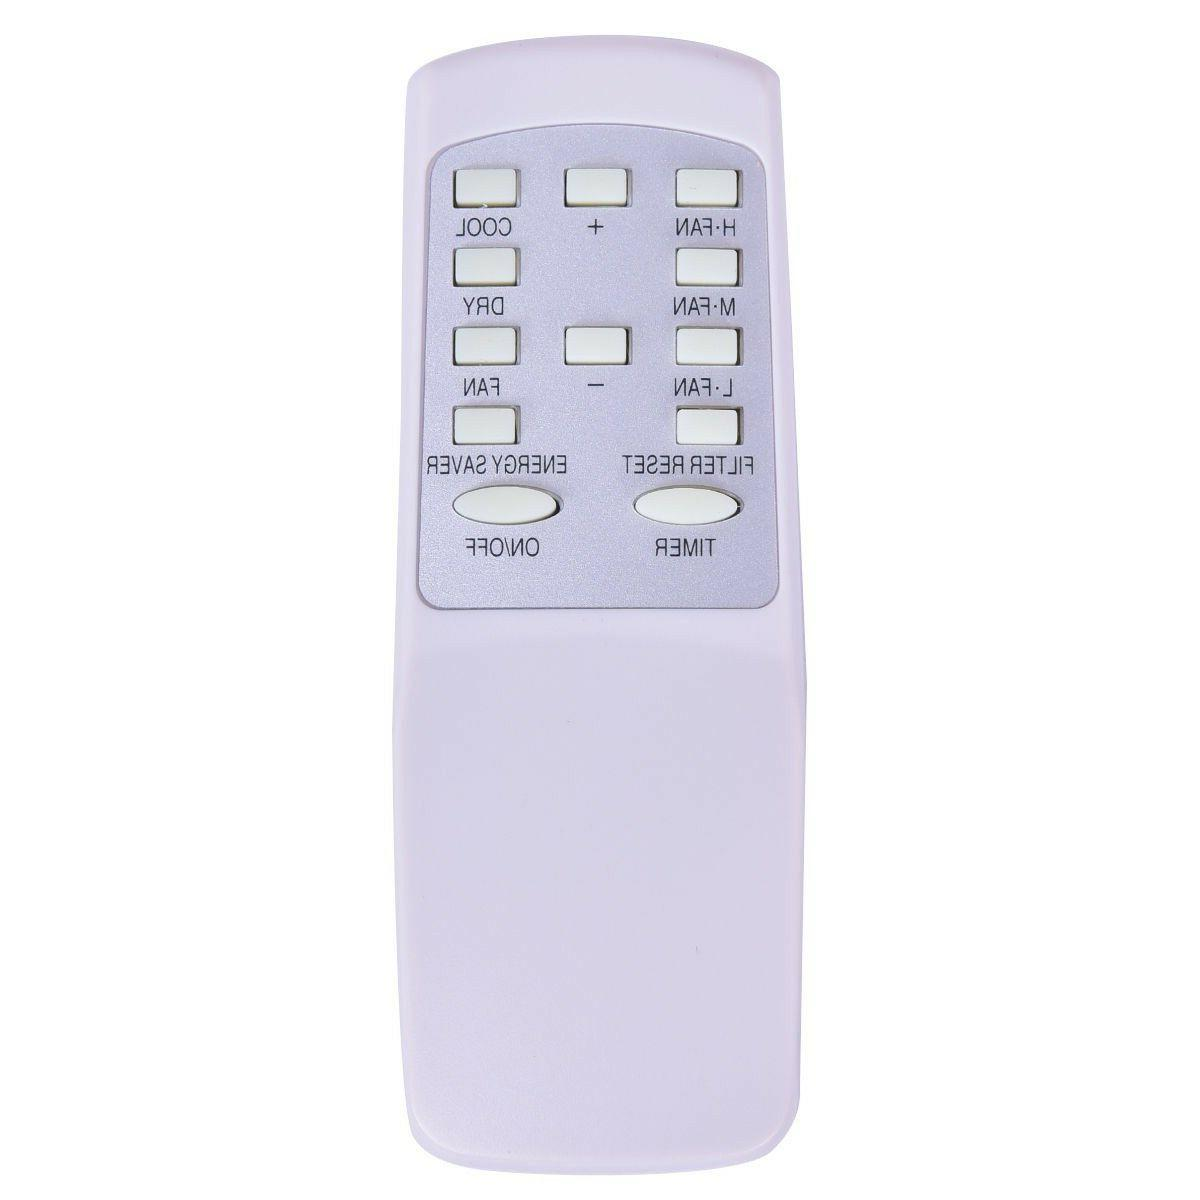 Heavy Compact Window Mounted Conditioner AC Remote Control Timer